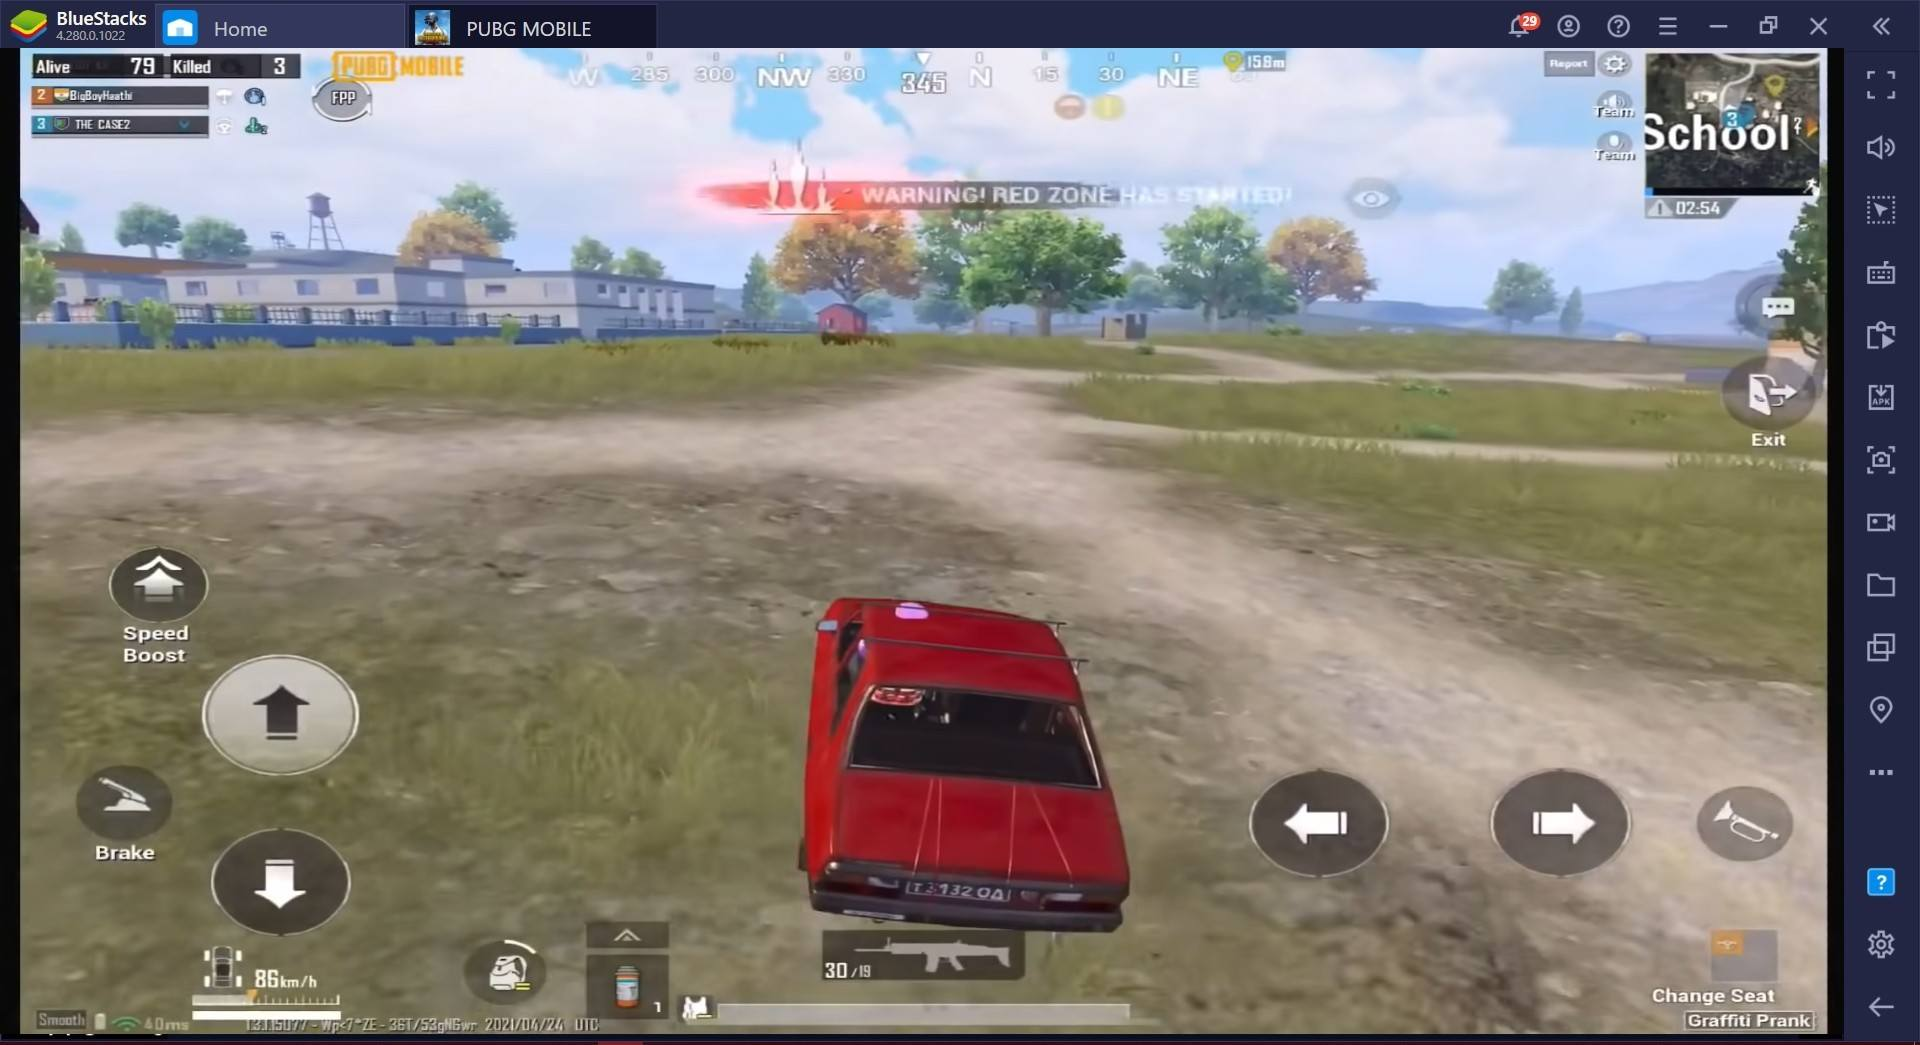 PUBG Mobile on PC: BlueStacks Guide to Playing Solo and Duo